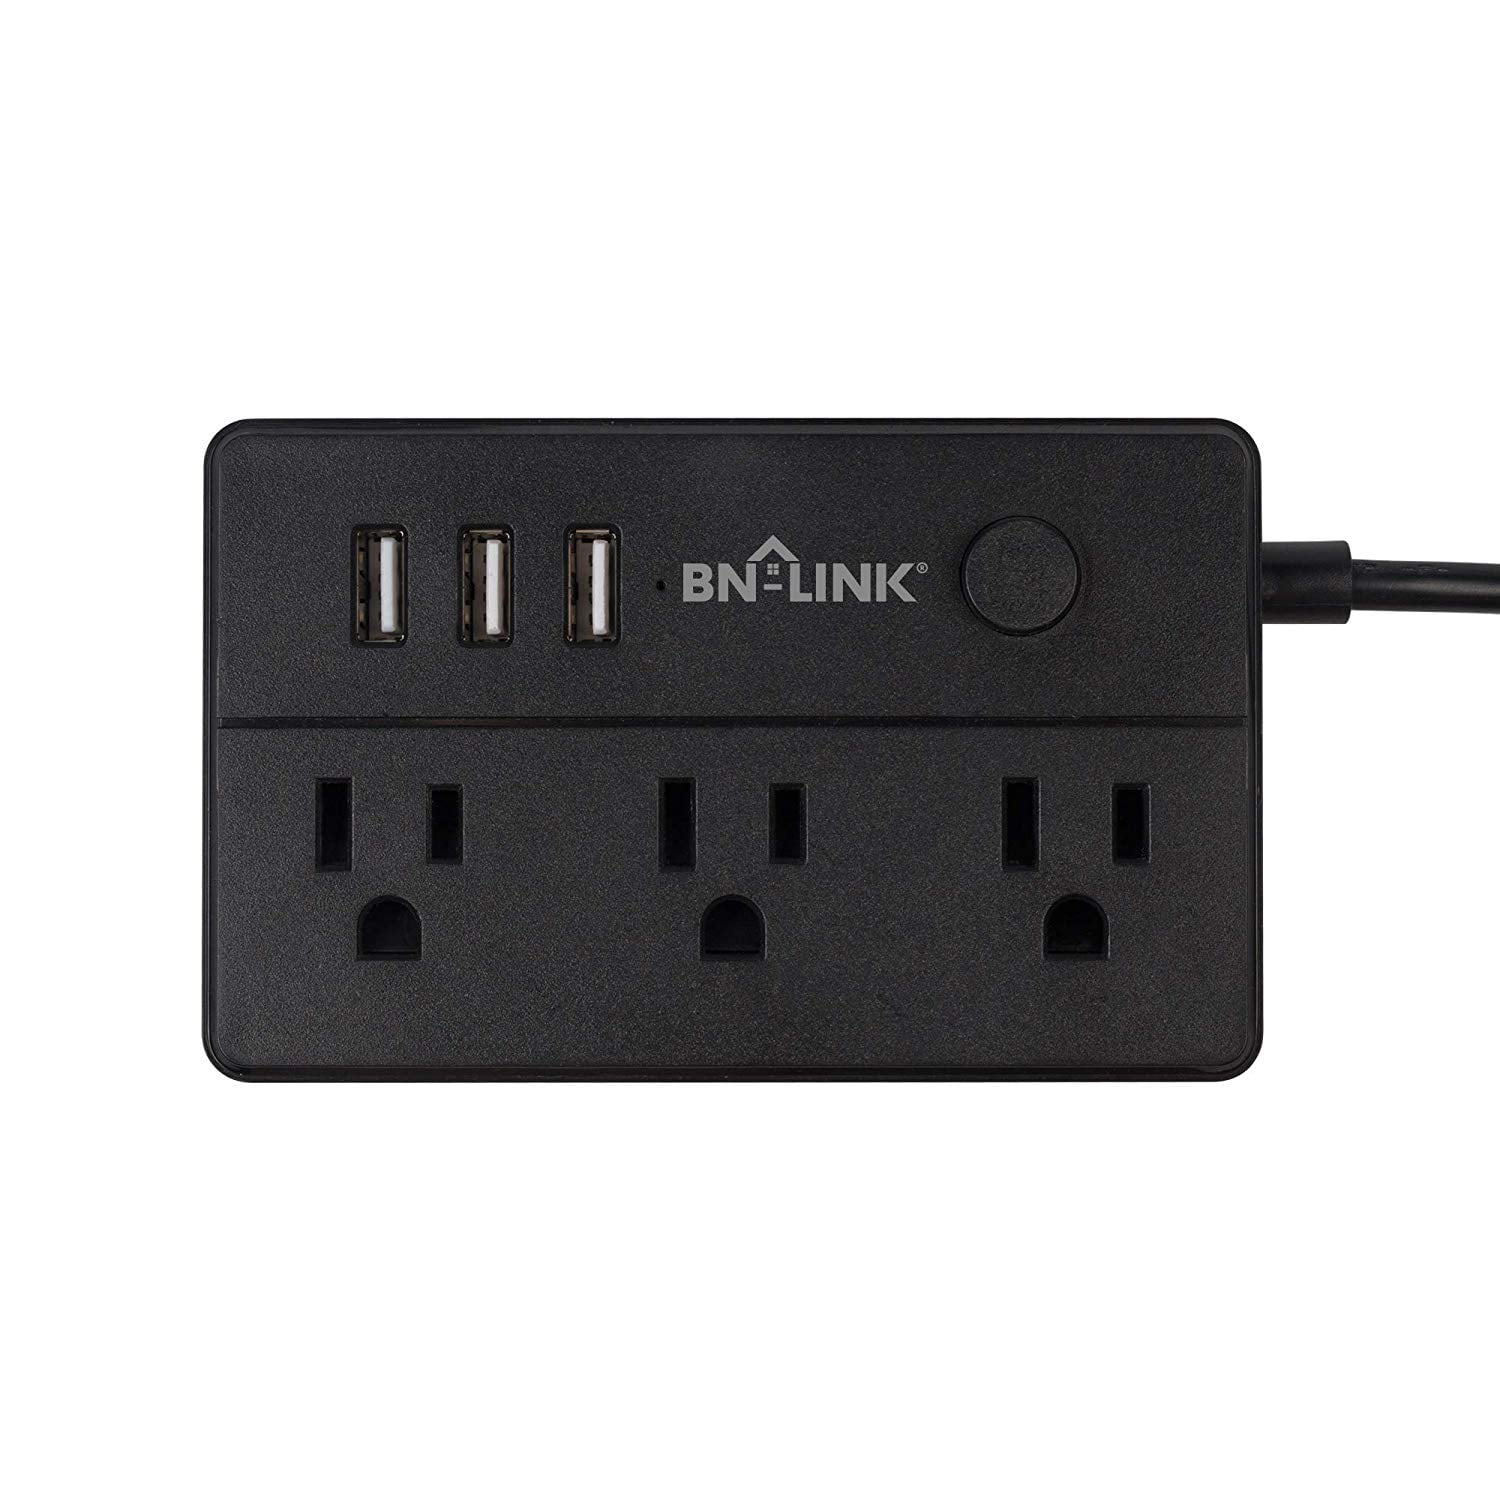 BN-LINK Mini Desk Power Strip with 2 Outlets and 3 USB Ports Black 5 Feet Cord